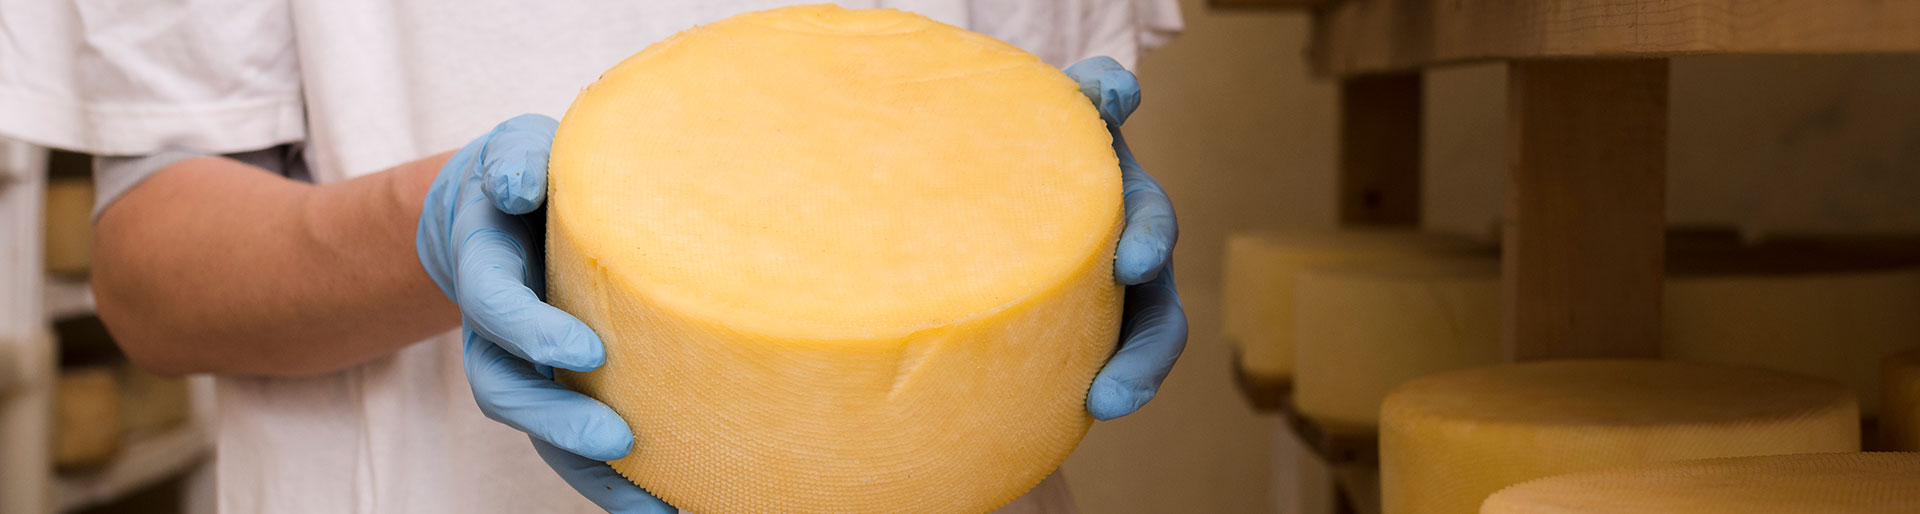 CS PTCPF - Fromage en production